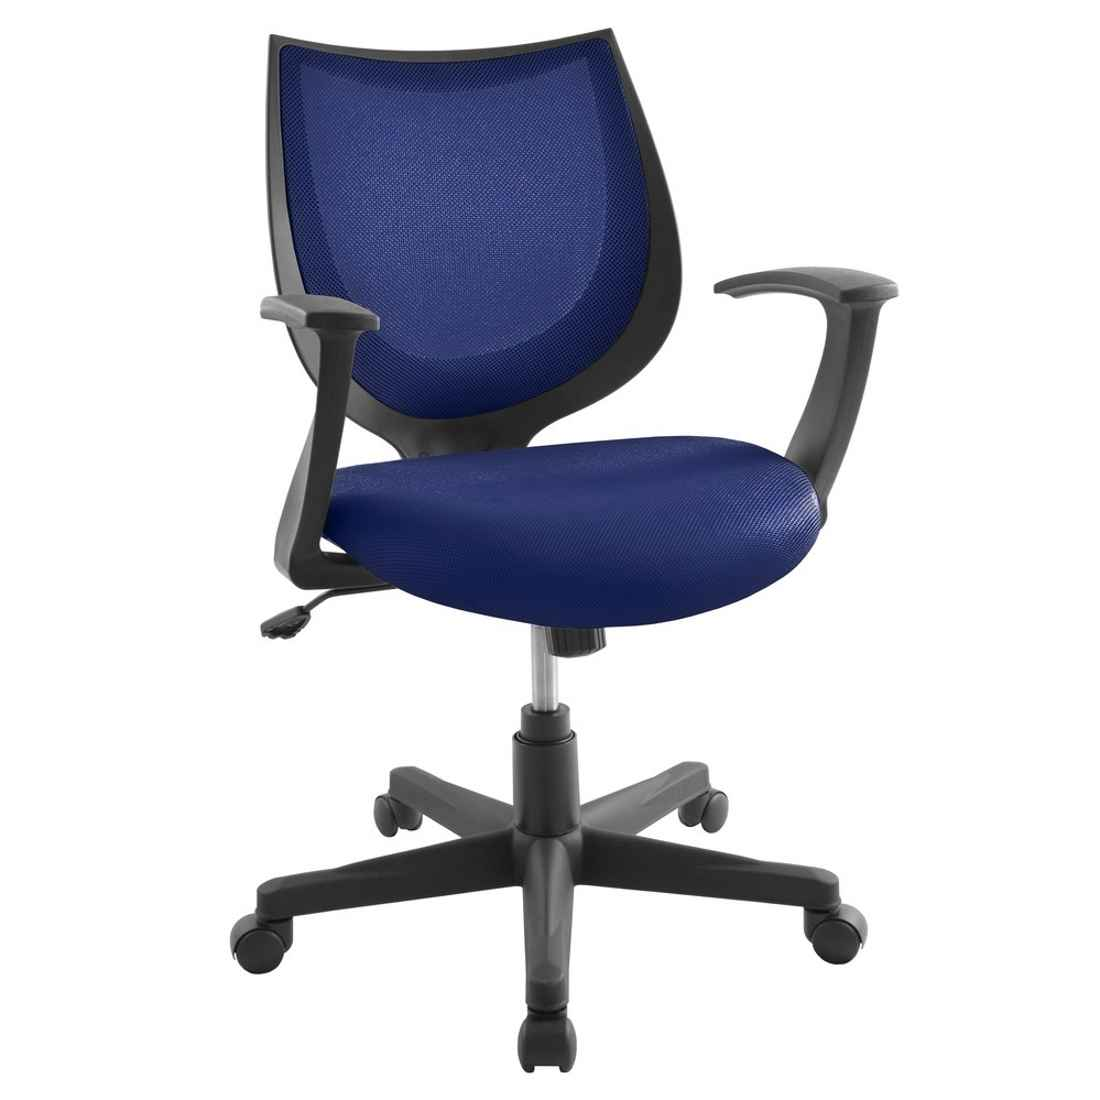 blue office chair best lawn recliner desk for home